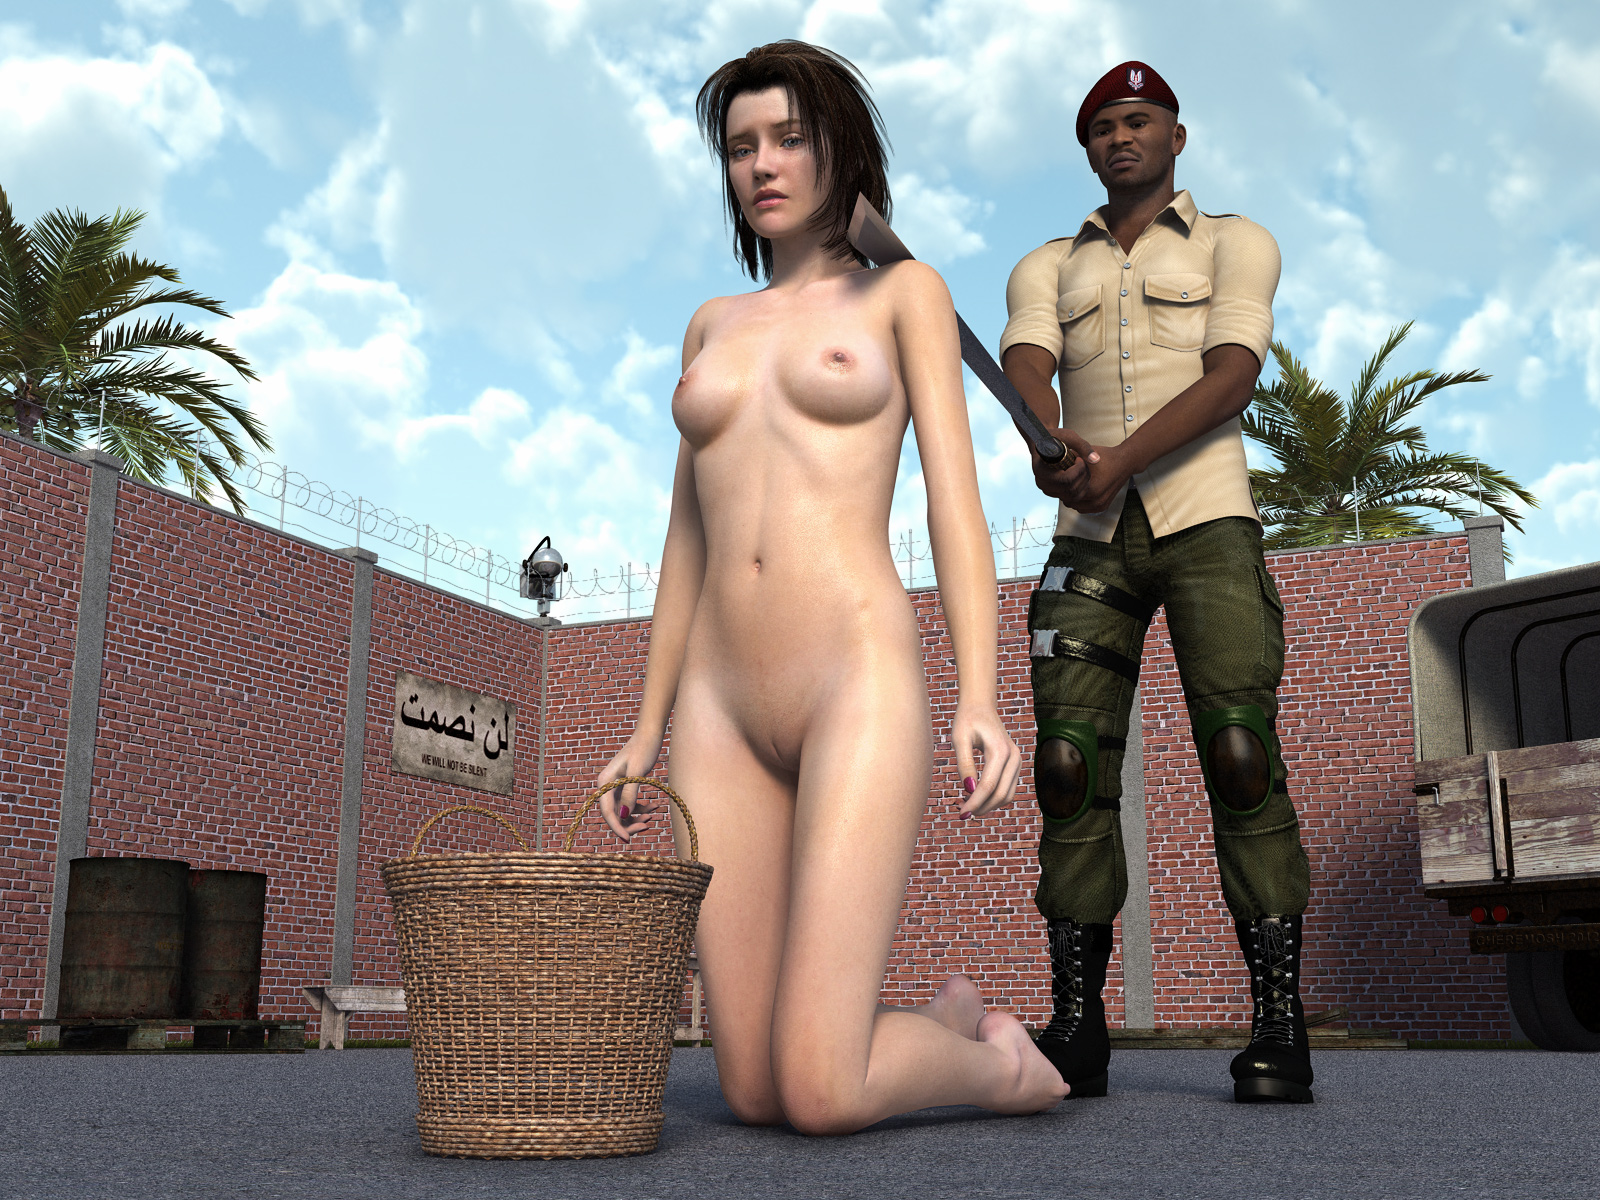 3d women in peril porn videos adult picture